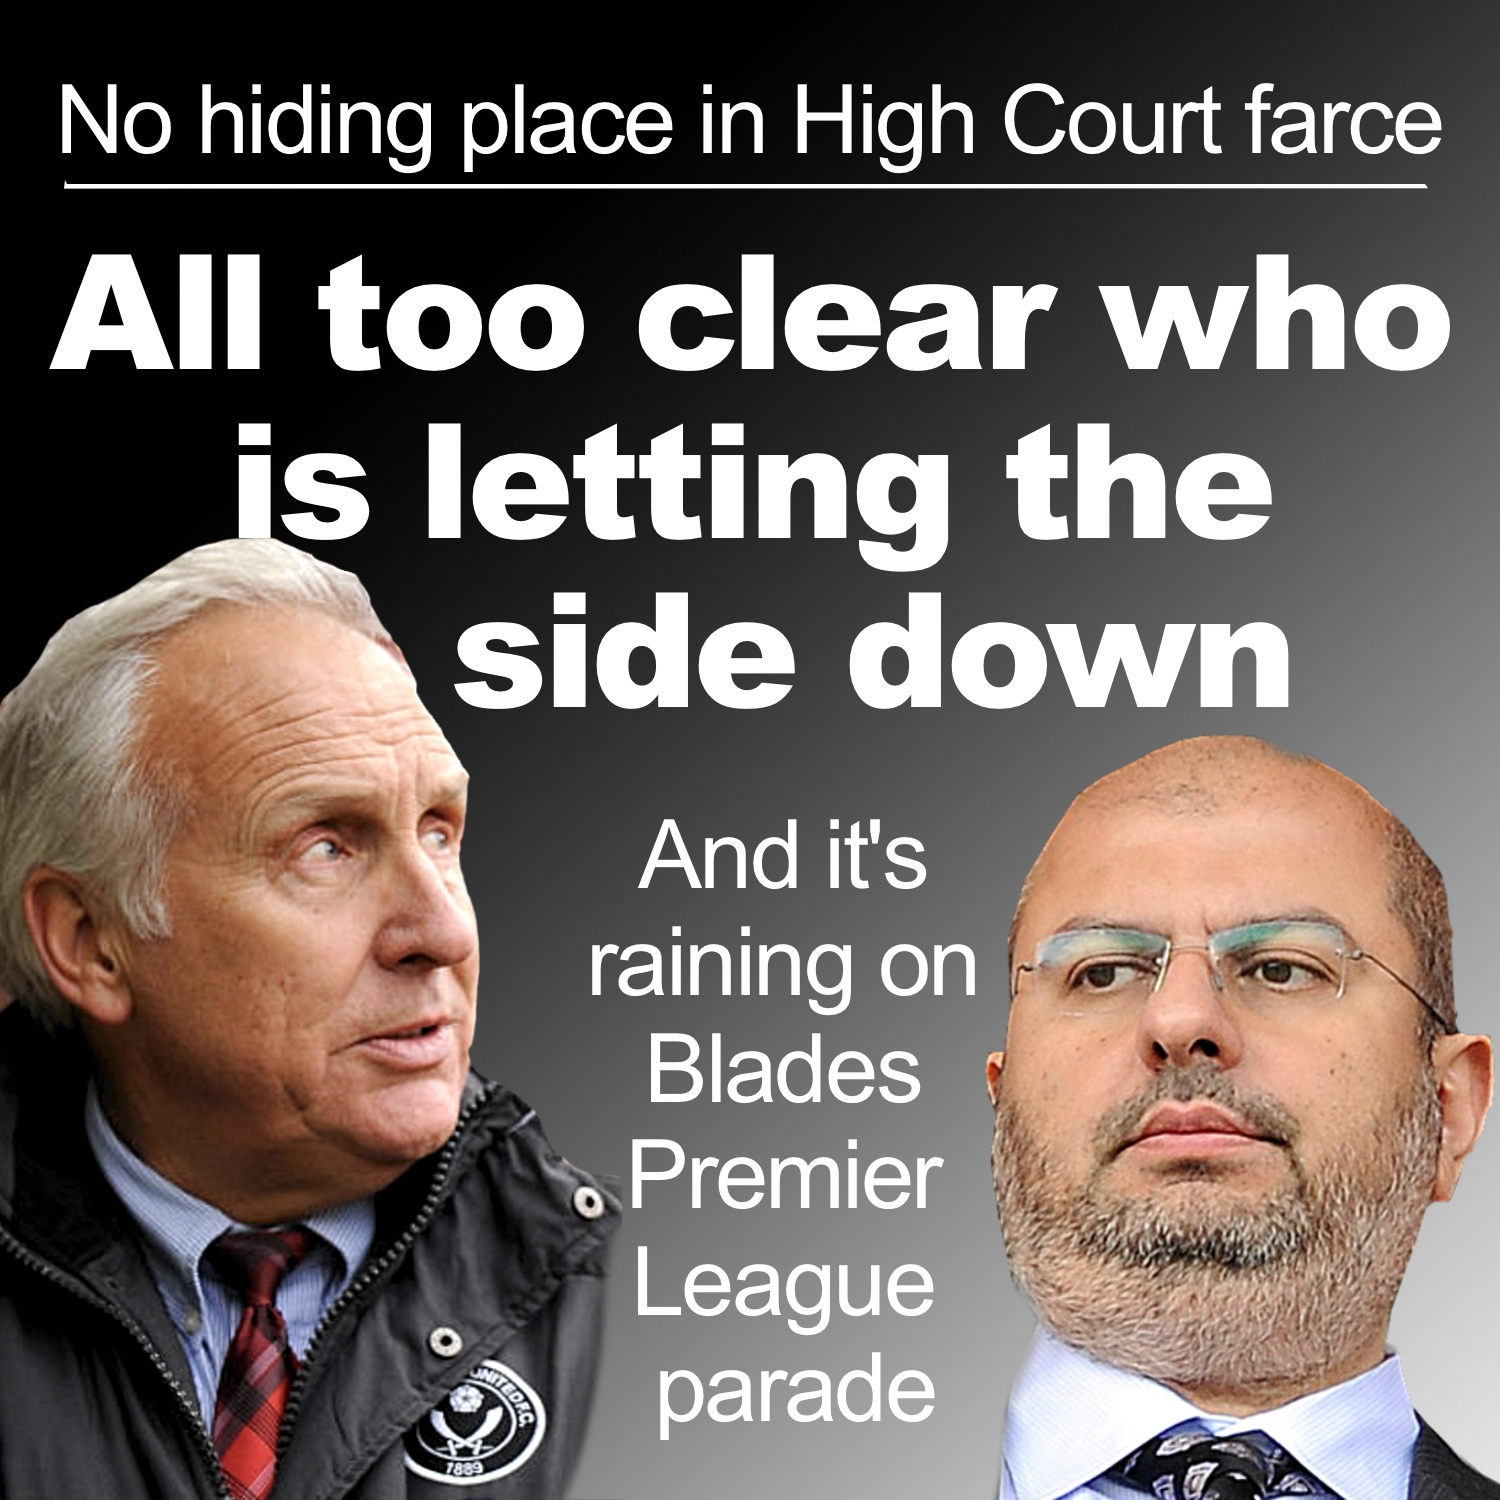 No hiding place for Sheffield United's warring co-owners in High Court farce